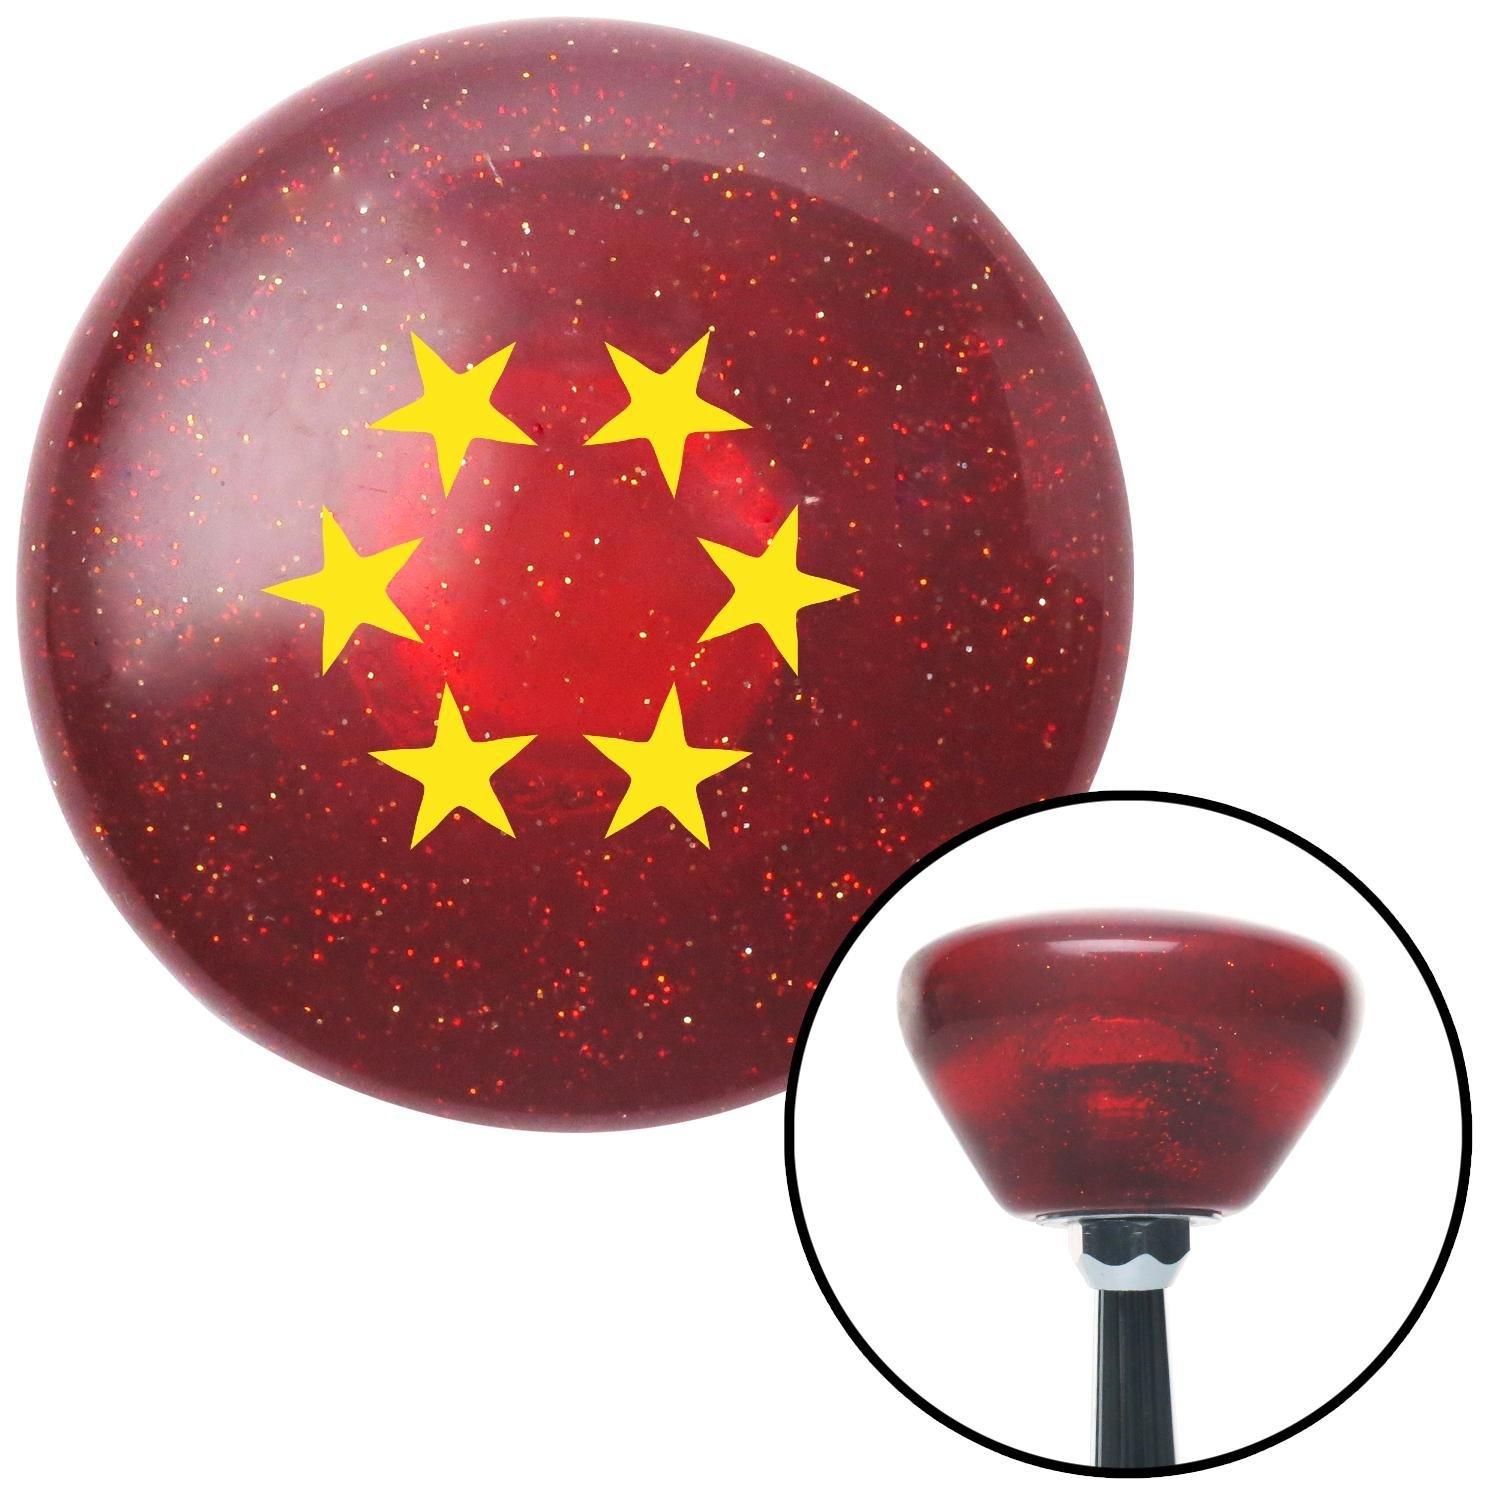 American Shifter 196749 Red Retro Metal Flake Shift Knob with M16 x 1.5 Insert Yellow 5 Stars in Circle